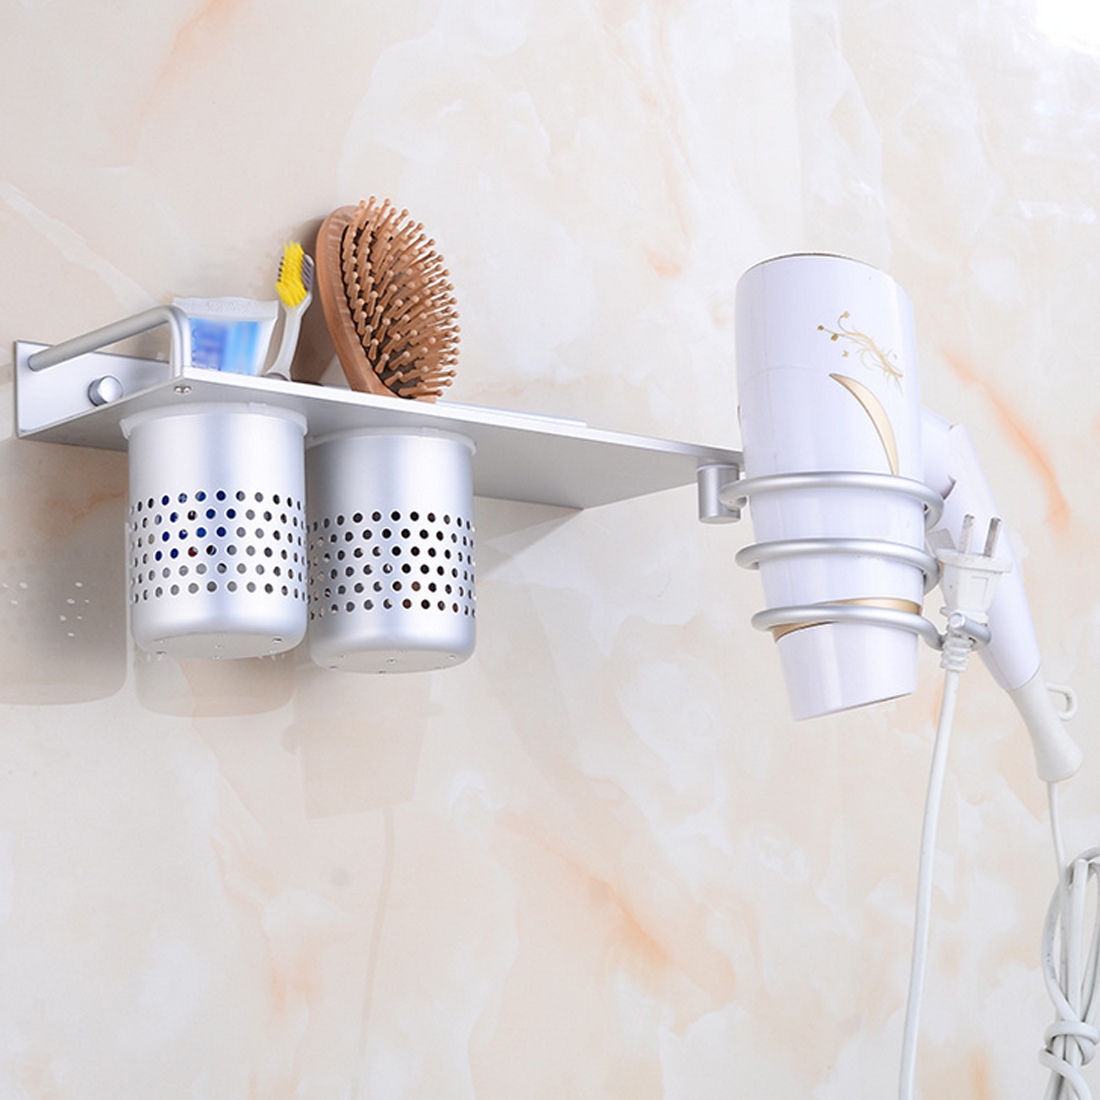 Wall Mounted Aluminum Hair Dryer Holder Storage Rack Stand Organizer with Basket Wall Mounted Aluminum Hair Dryer Holder Storage Rack Stand Organizer with Basket